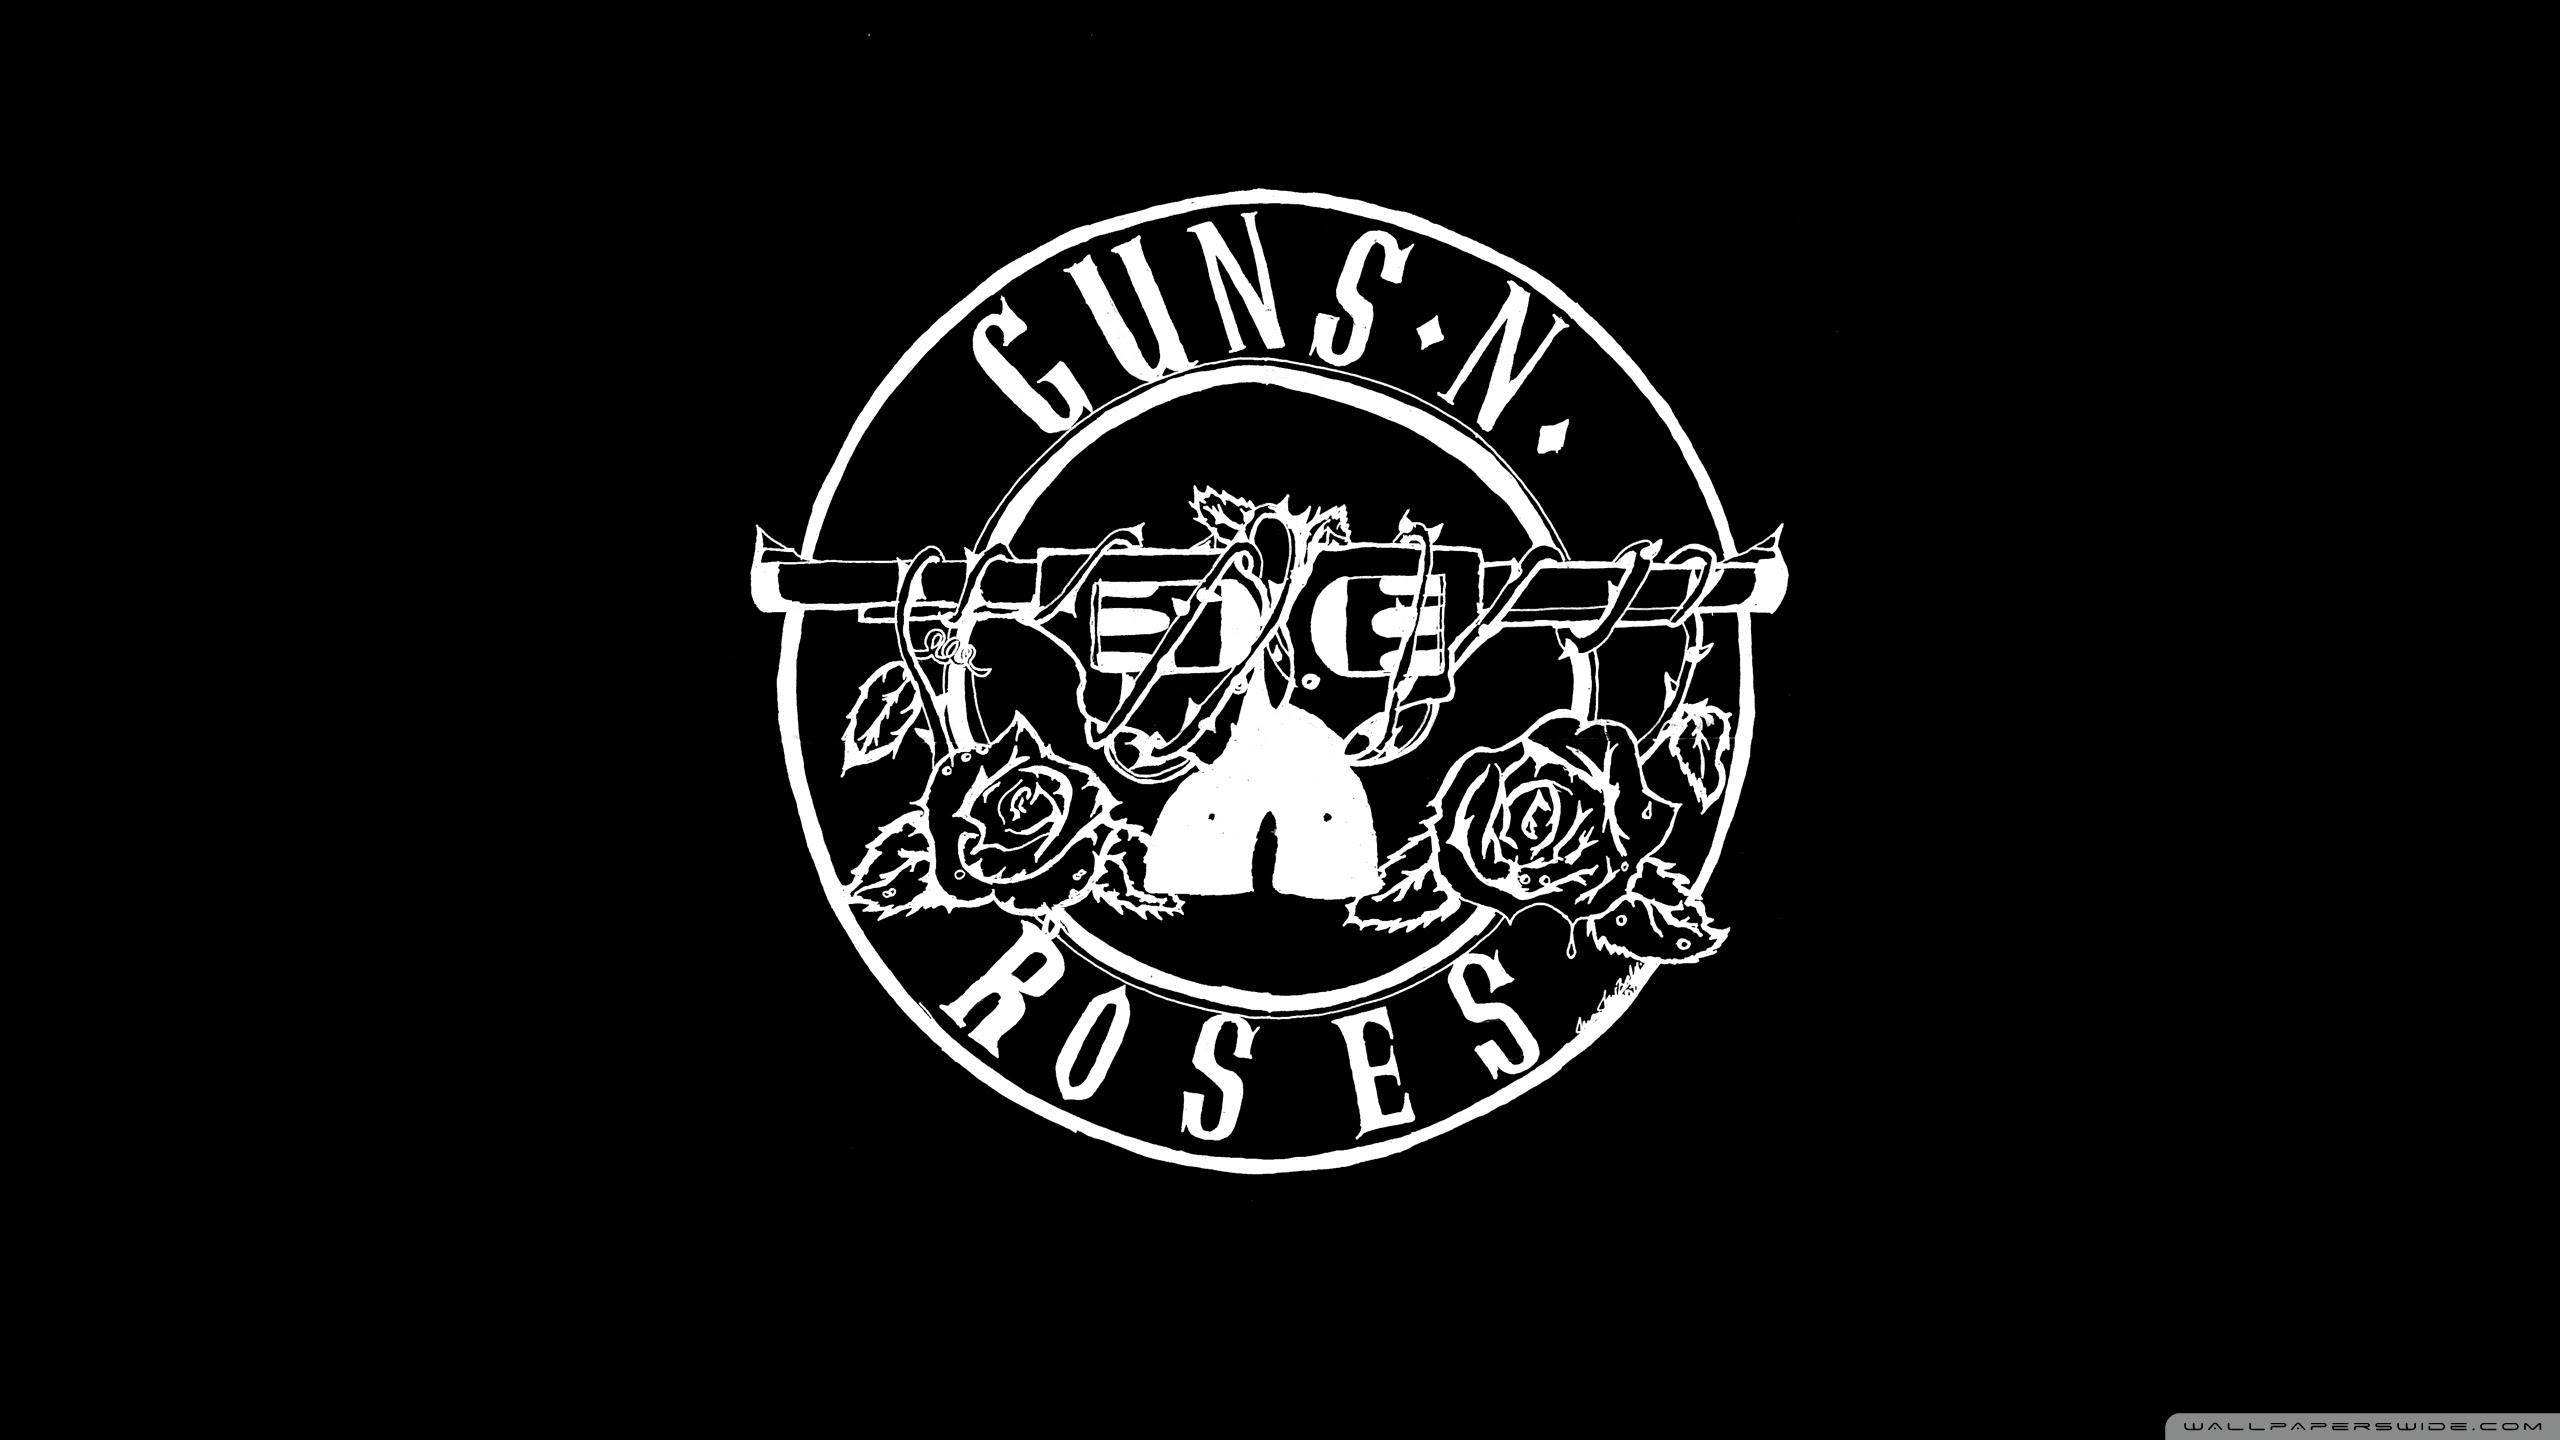 Guns N Roses Logo Hd Ultra Hd Desktop Background Wallpaper For